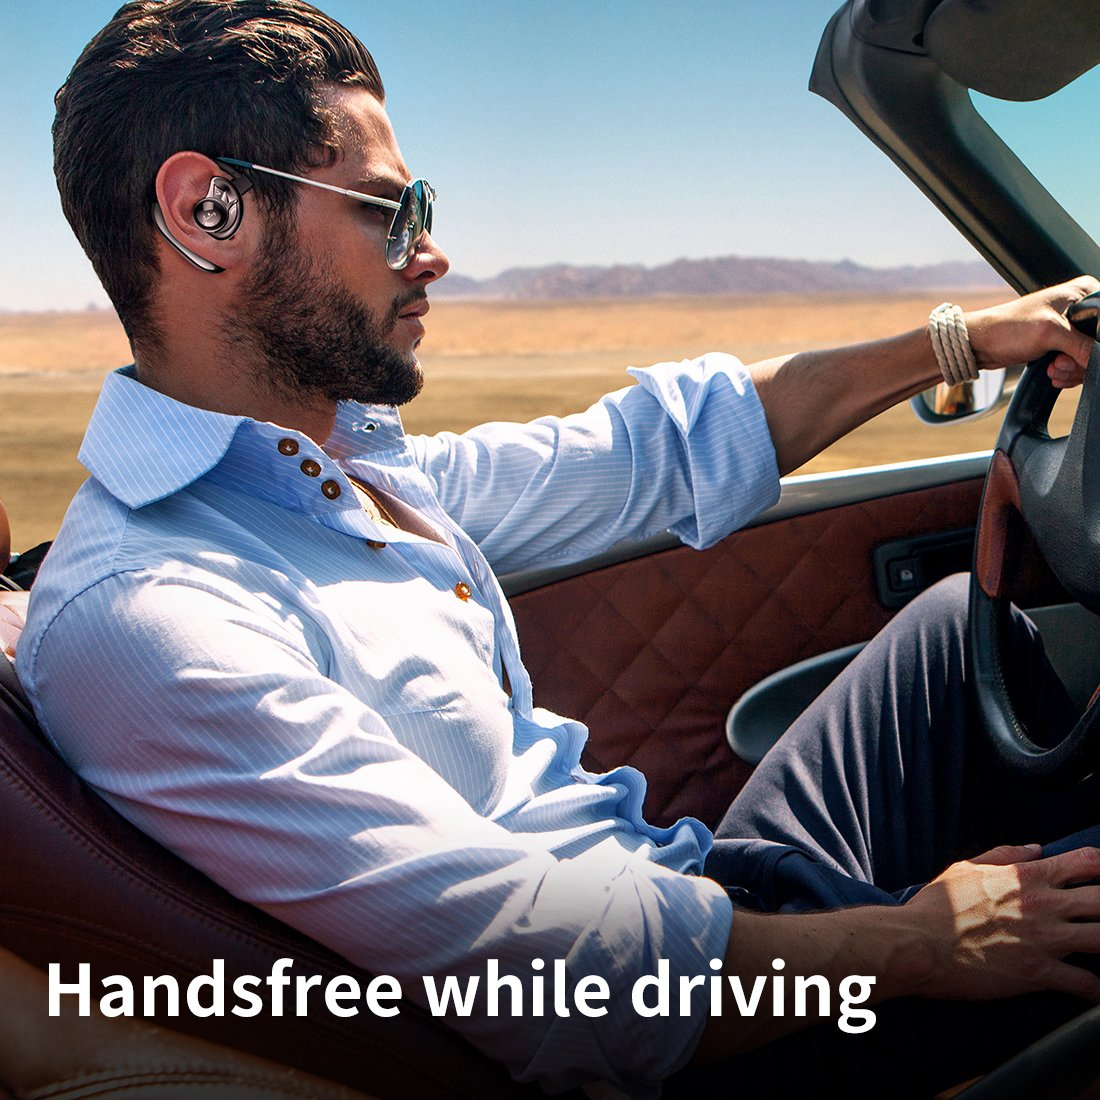 Aminy Bluetooth Headset with 16-Hr Playing Time V4.2 Car Bluetooth Headset Wireless Earphones with Mic Cell Phone noise cancelling Bluetooth Earpiece for iPhone Samsung Android (Updated Version) by Aminy (Image #6)